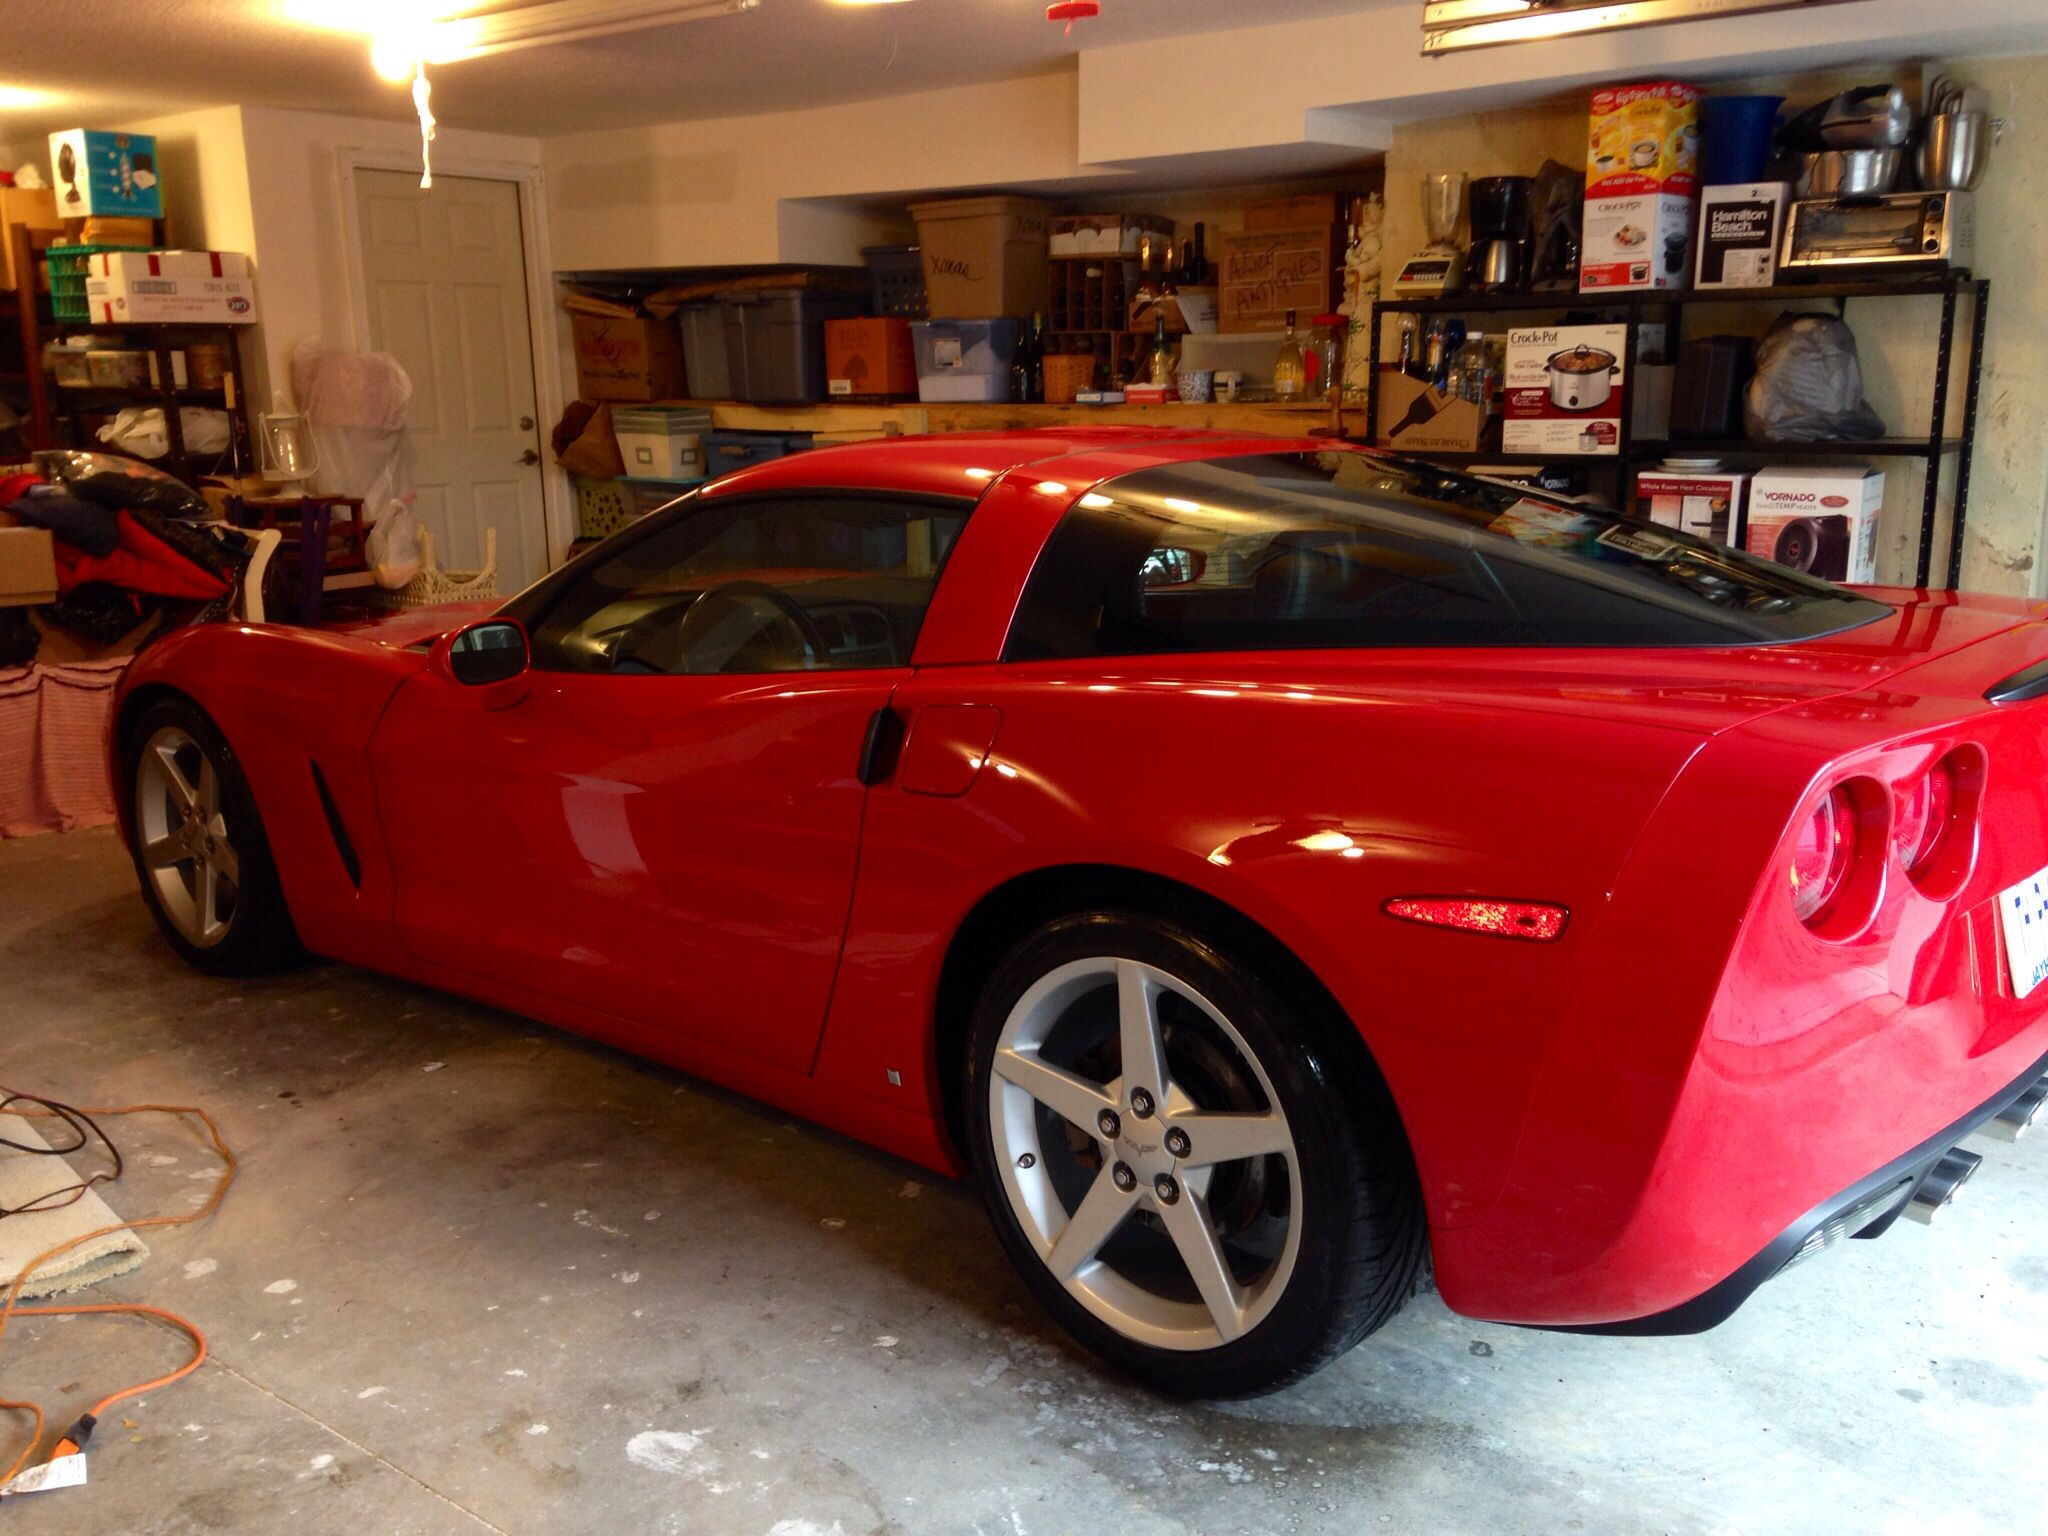 3 steps to get the Corvette winterized by Palladium Motorsports: Compound, polish and wax.